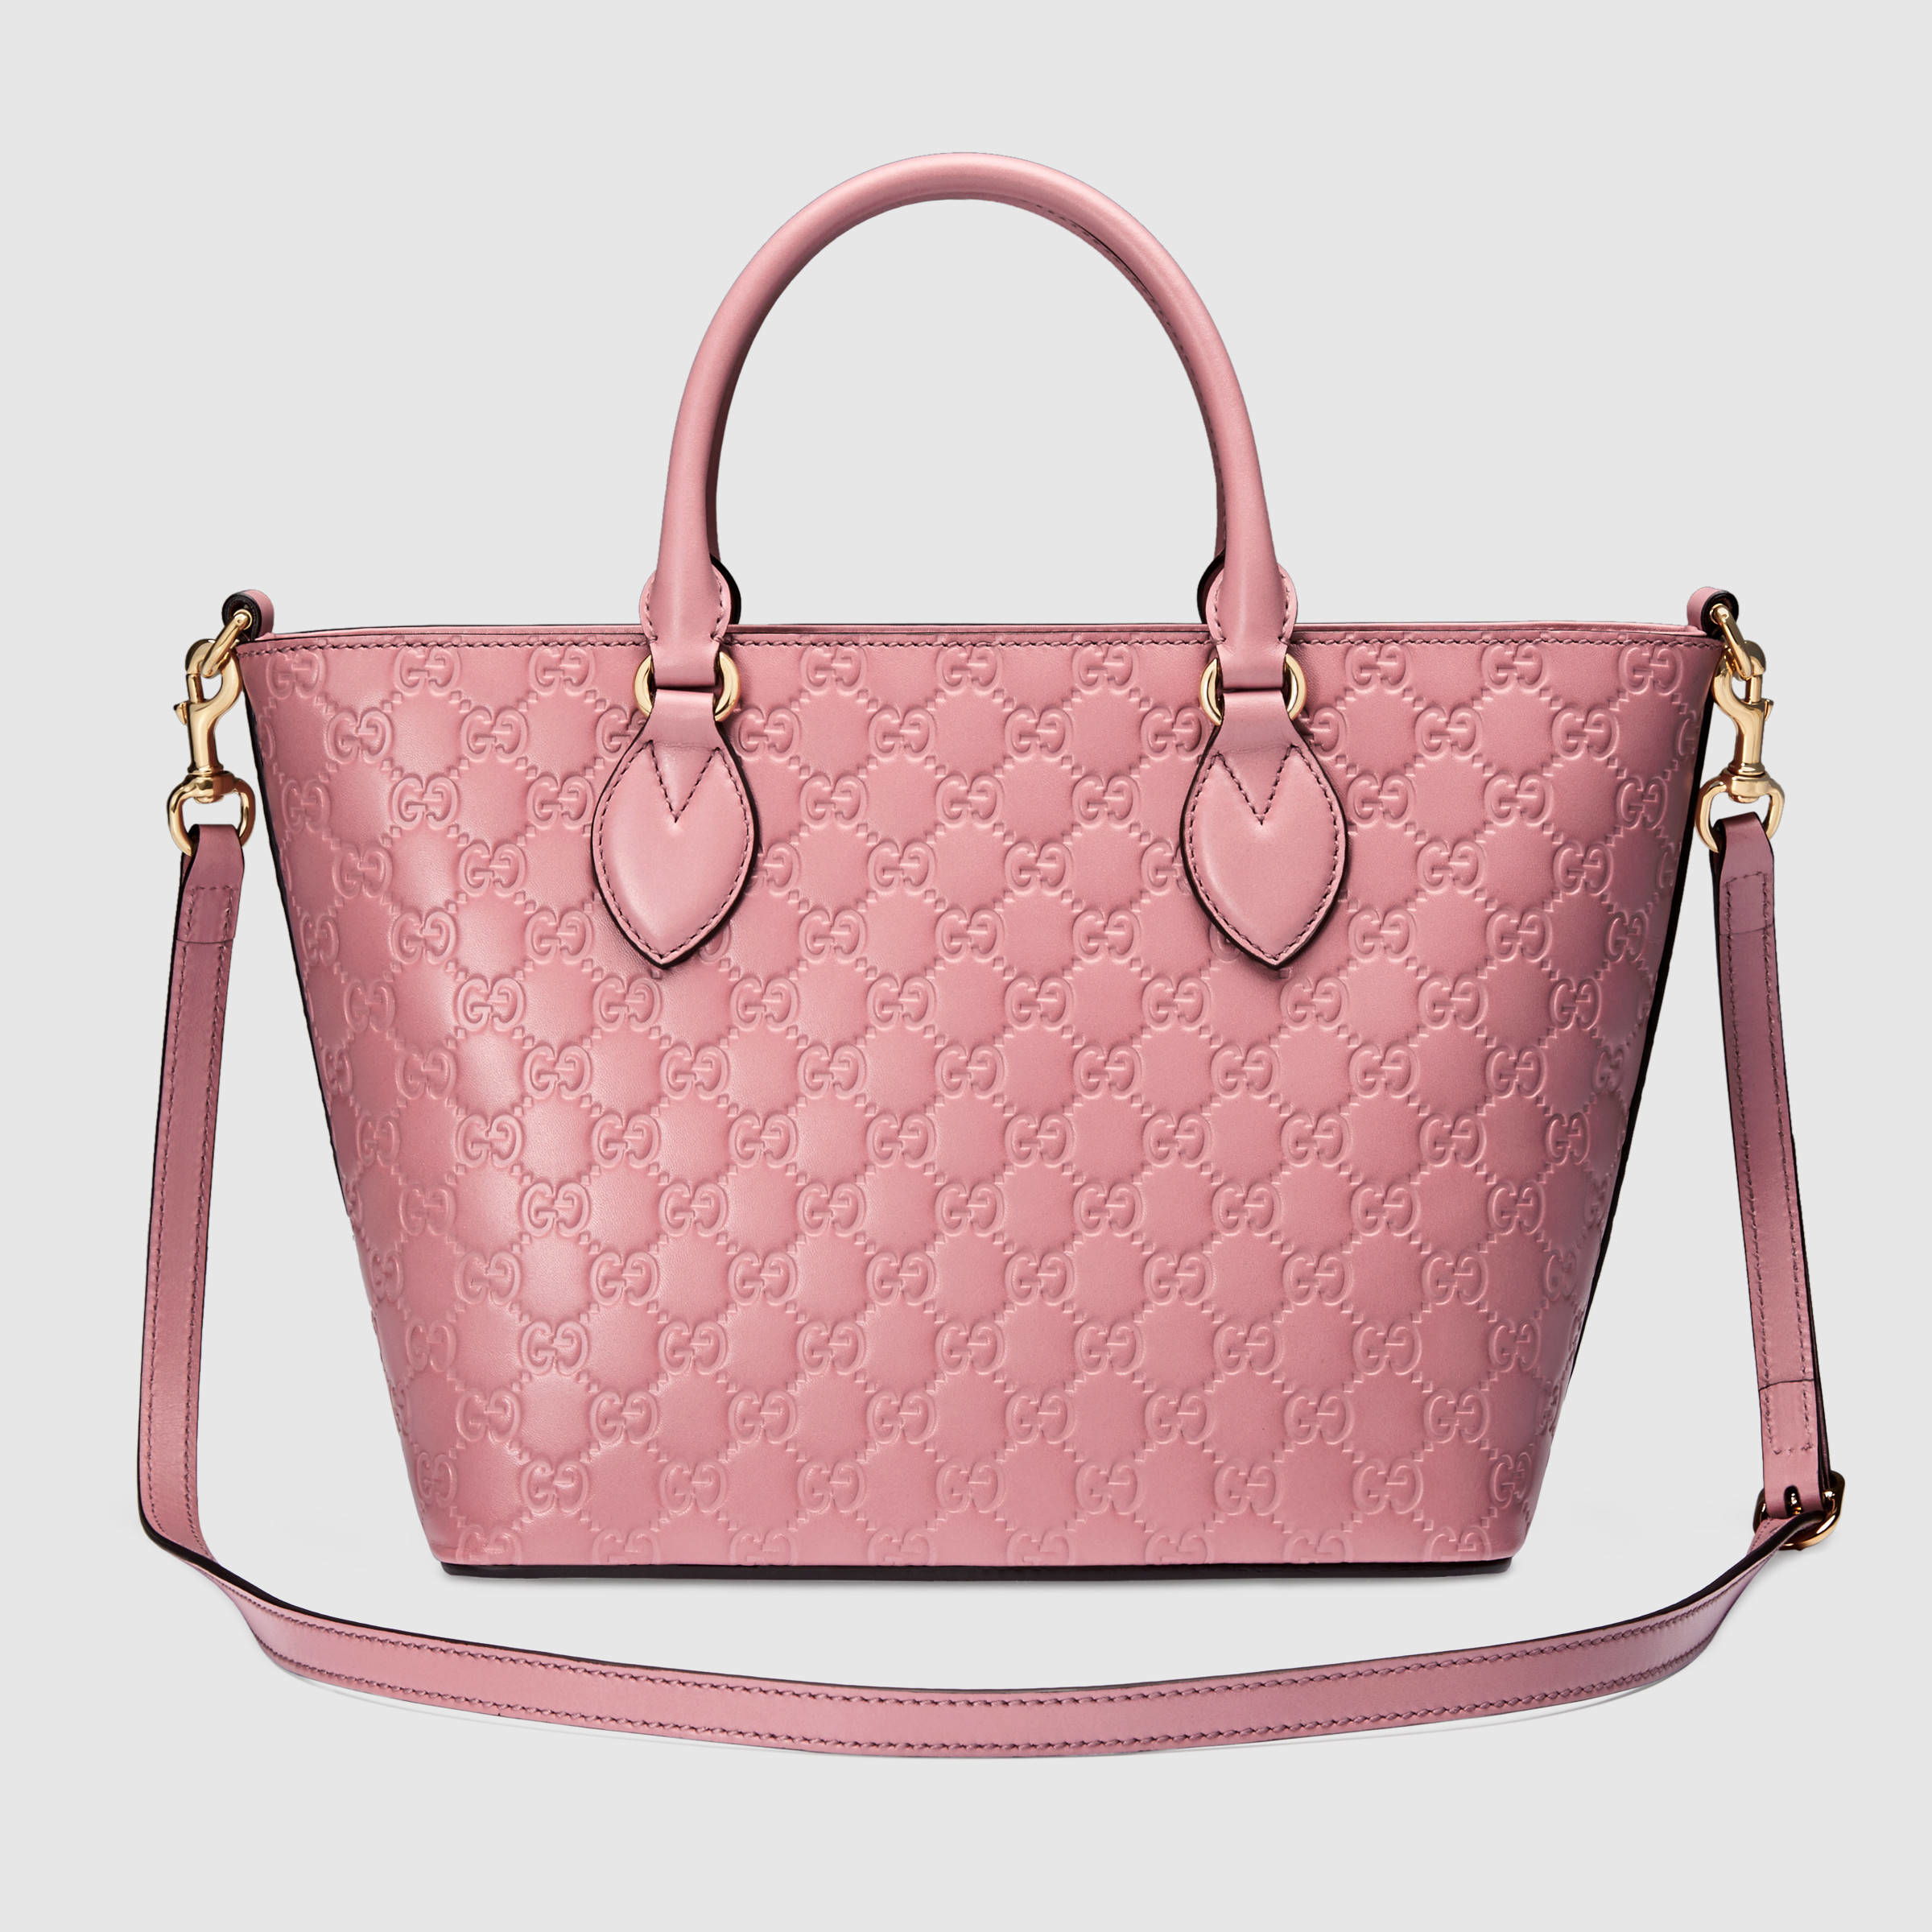 0f052eda2c75 Gucci Leather Totes | Stanford Center for Opportunity Policy in ...